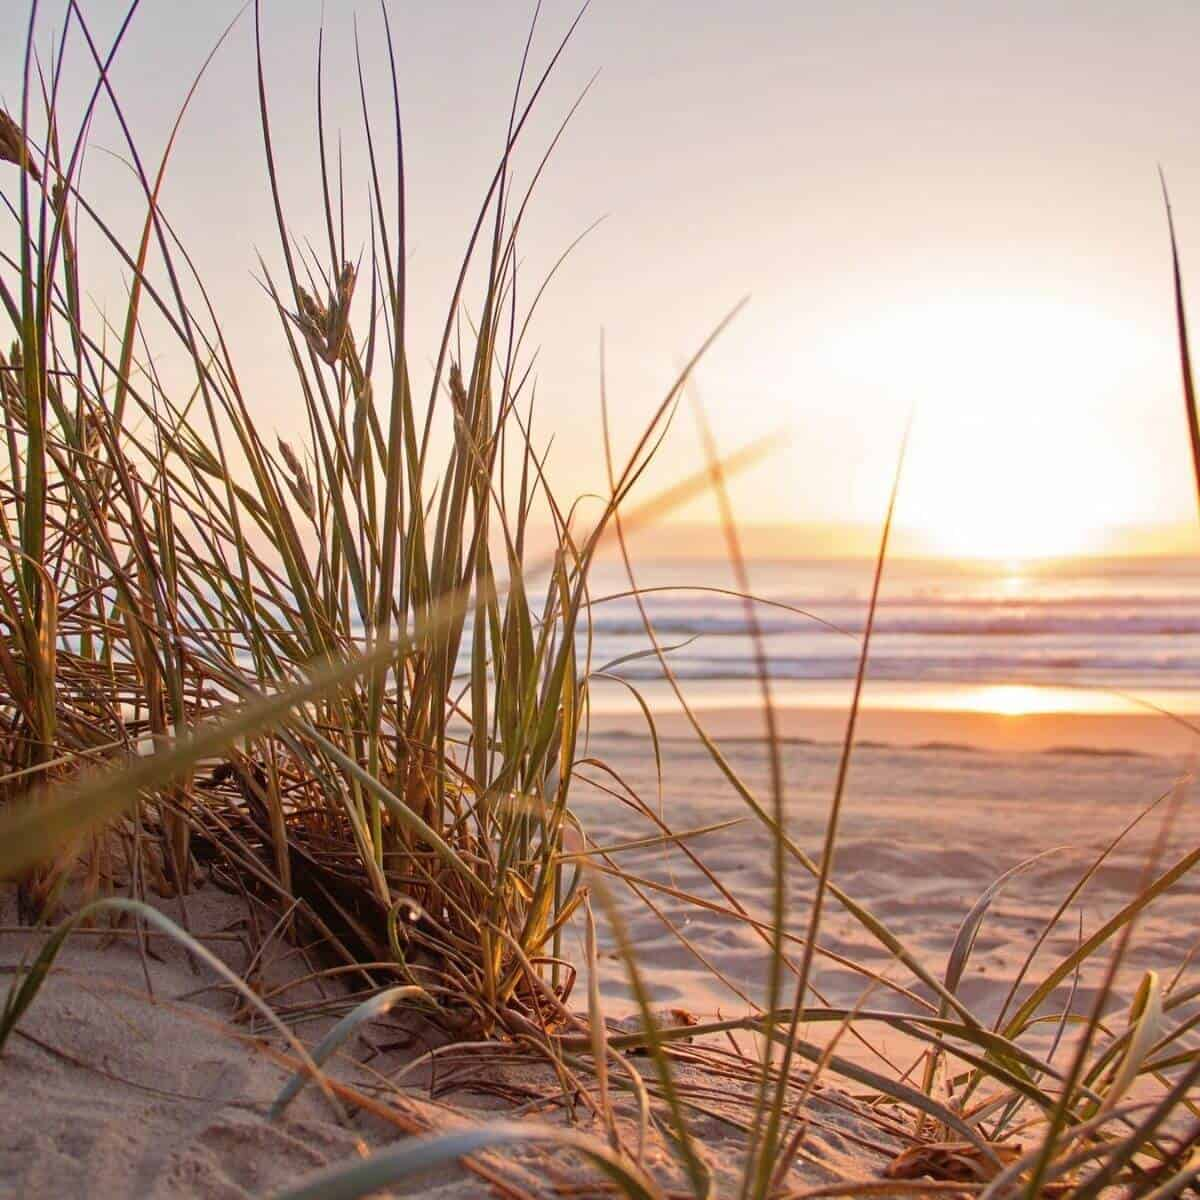 Tall grass and a sunrise at Surfside Beach in South Carolina.